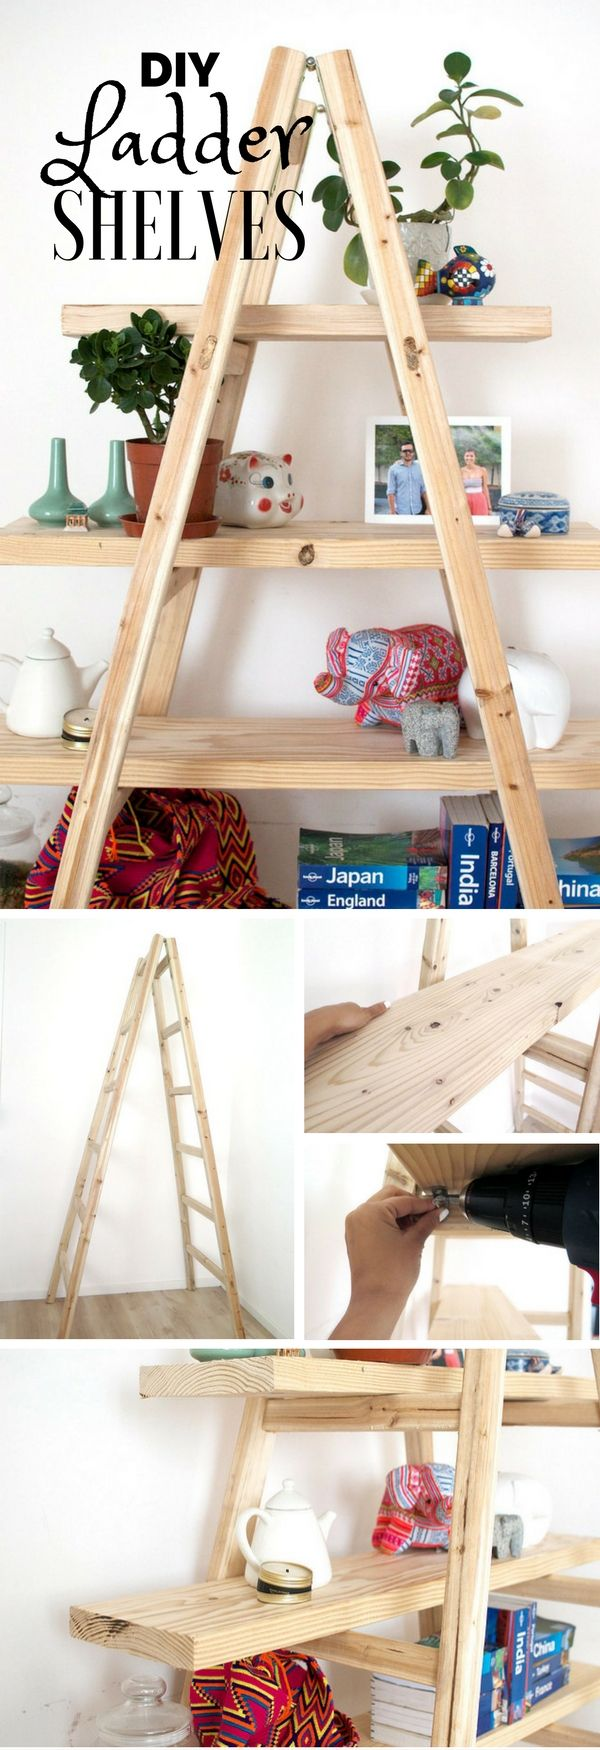 25 great ideas about ladder shelves on pinterest. Black Bedroom Furniture Sets. Home Design Ideas